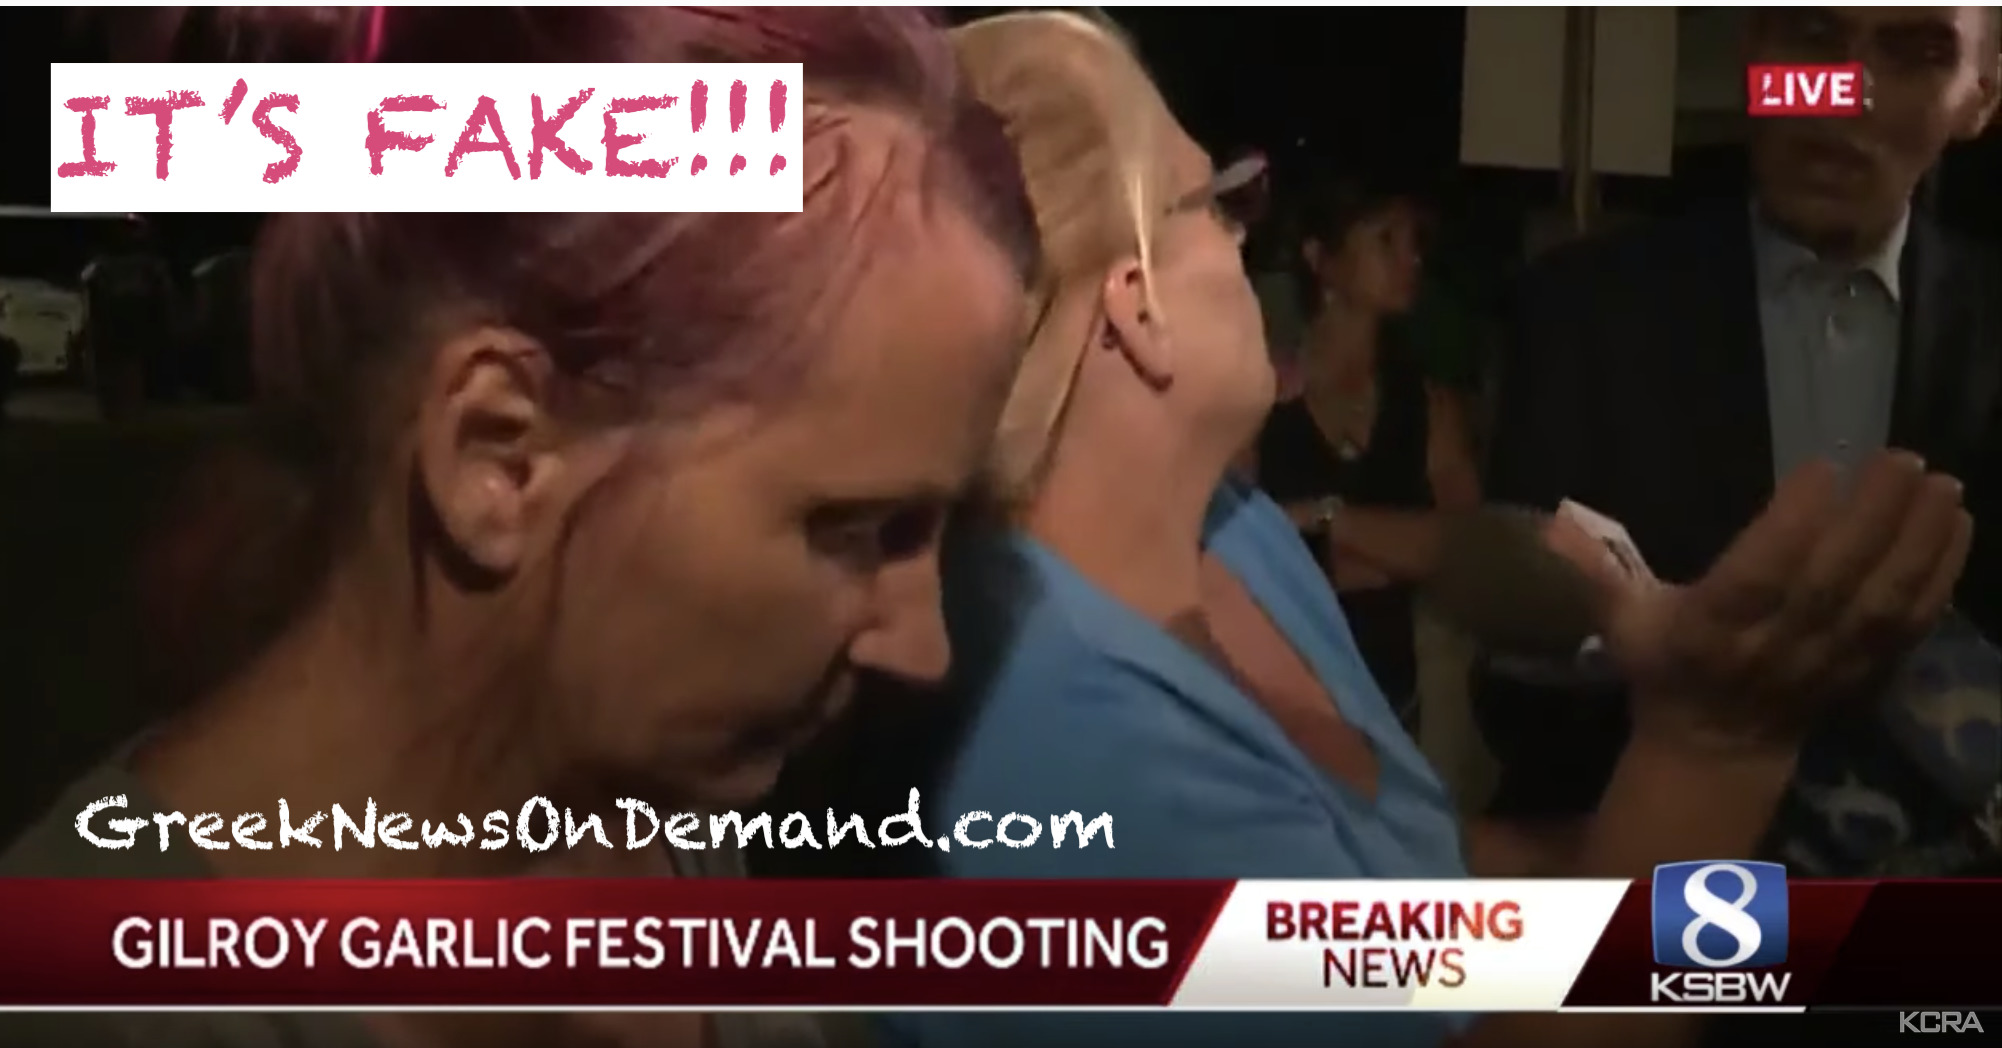 Gilroy Garlic Festival: Eye witnesses: At least TWO gunman. The gov't & media say only 1! #FalseFlag